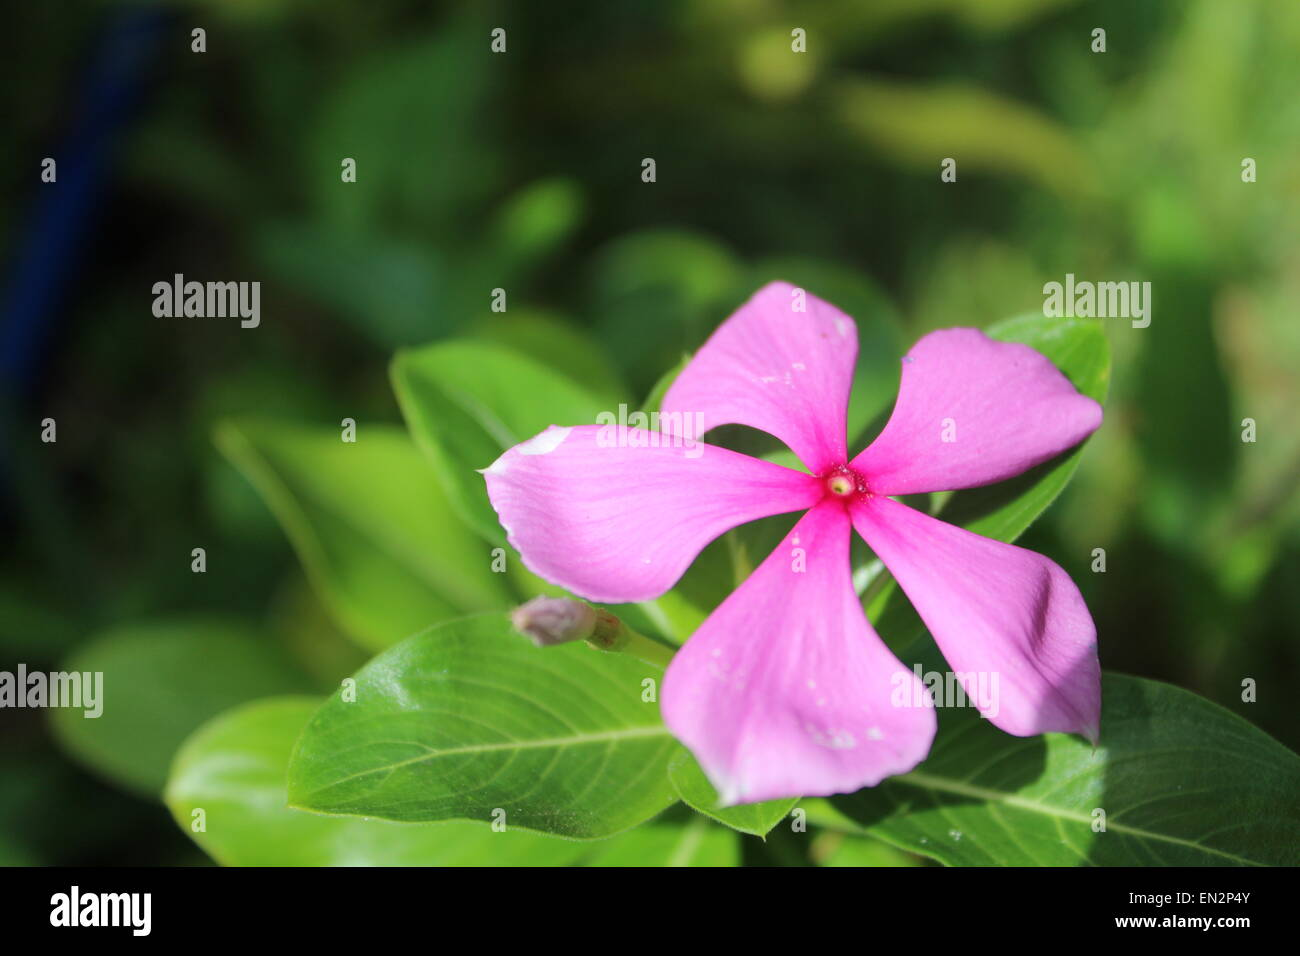 pink-purple Flower, Venezuela. America. - Stock Image